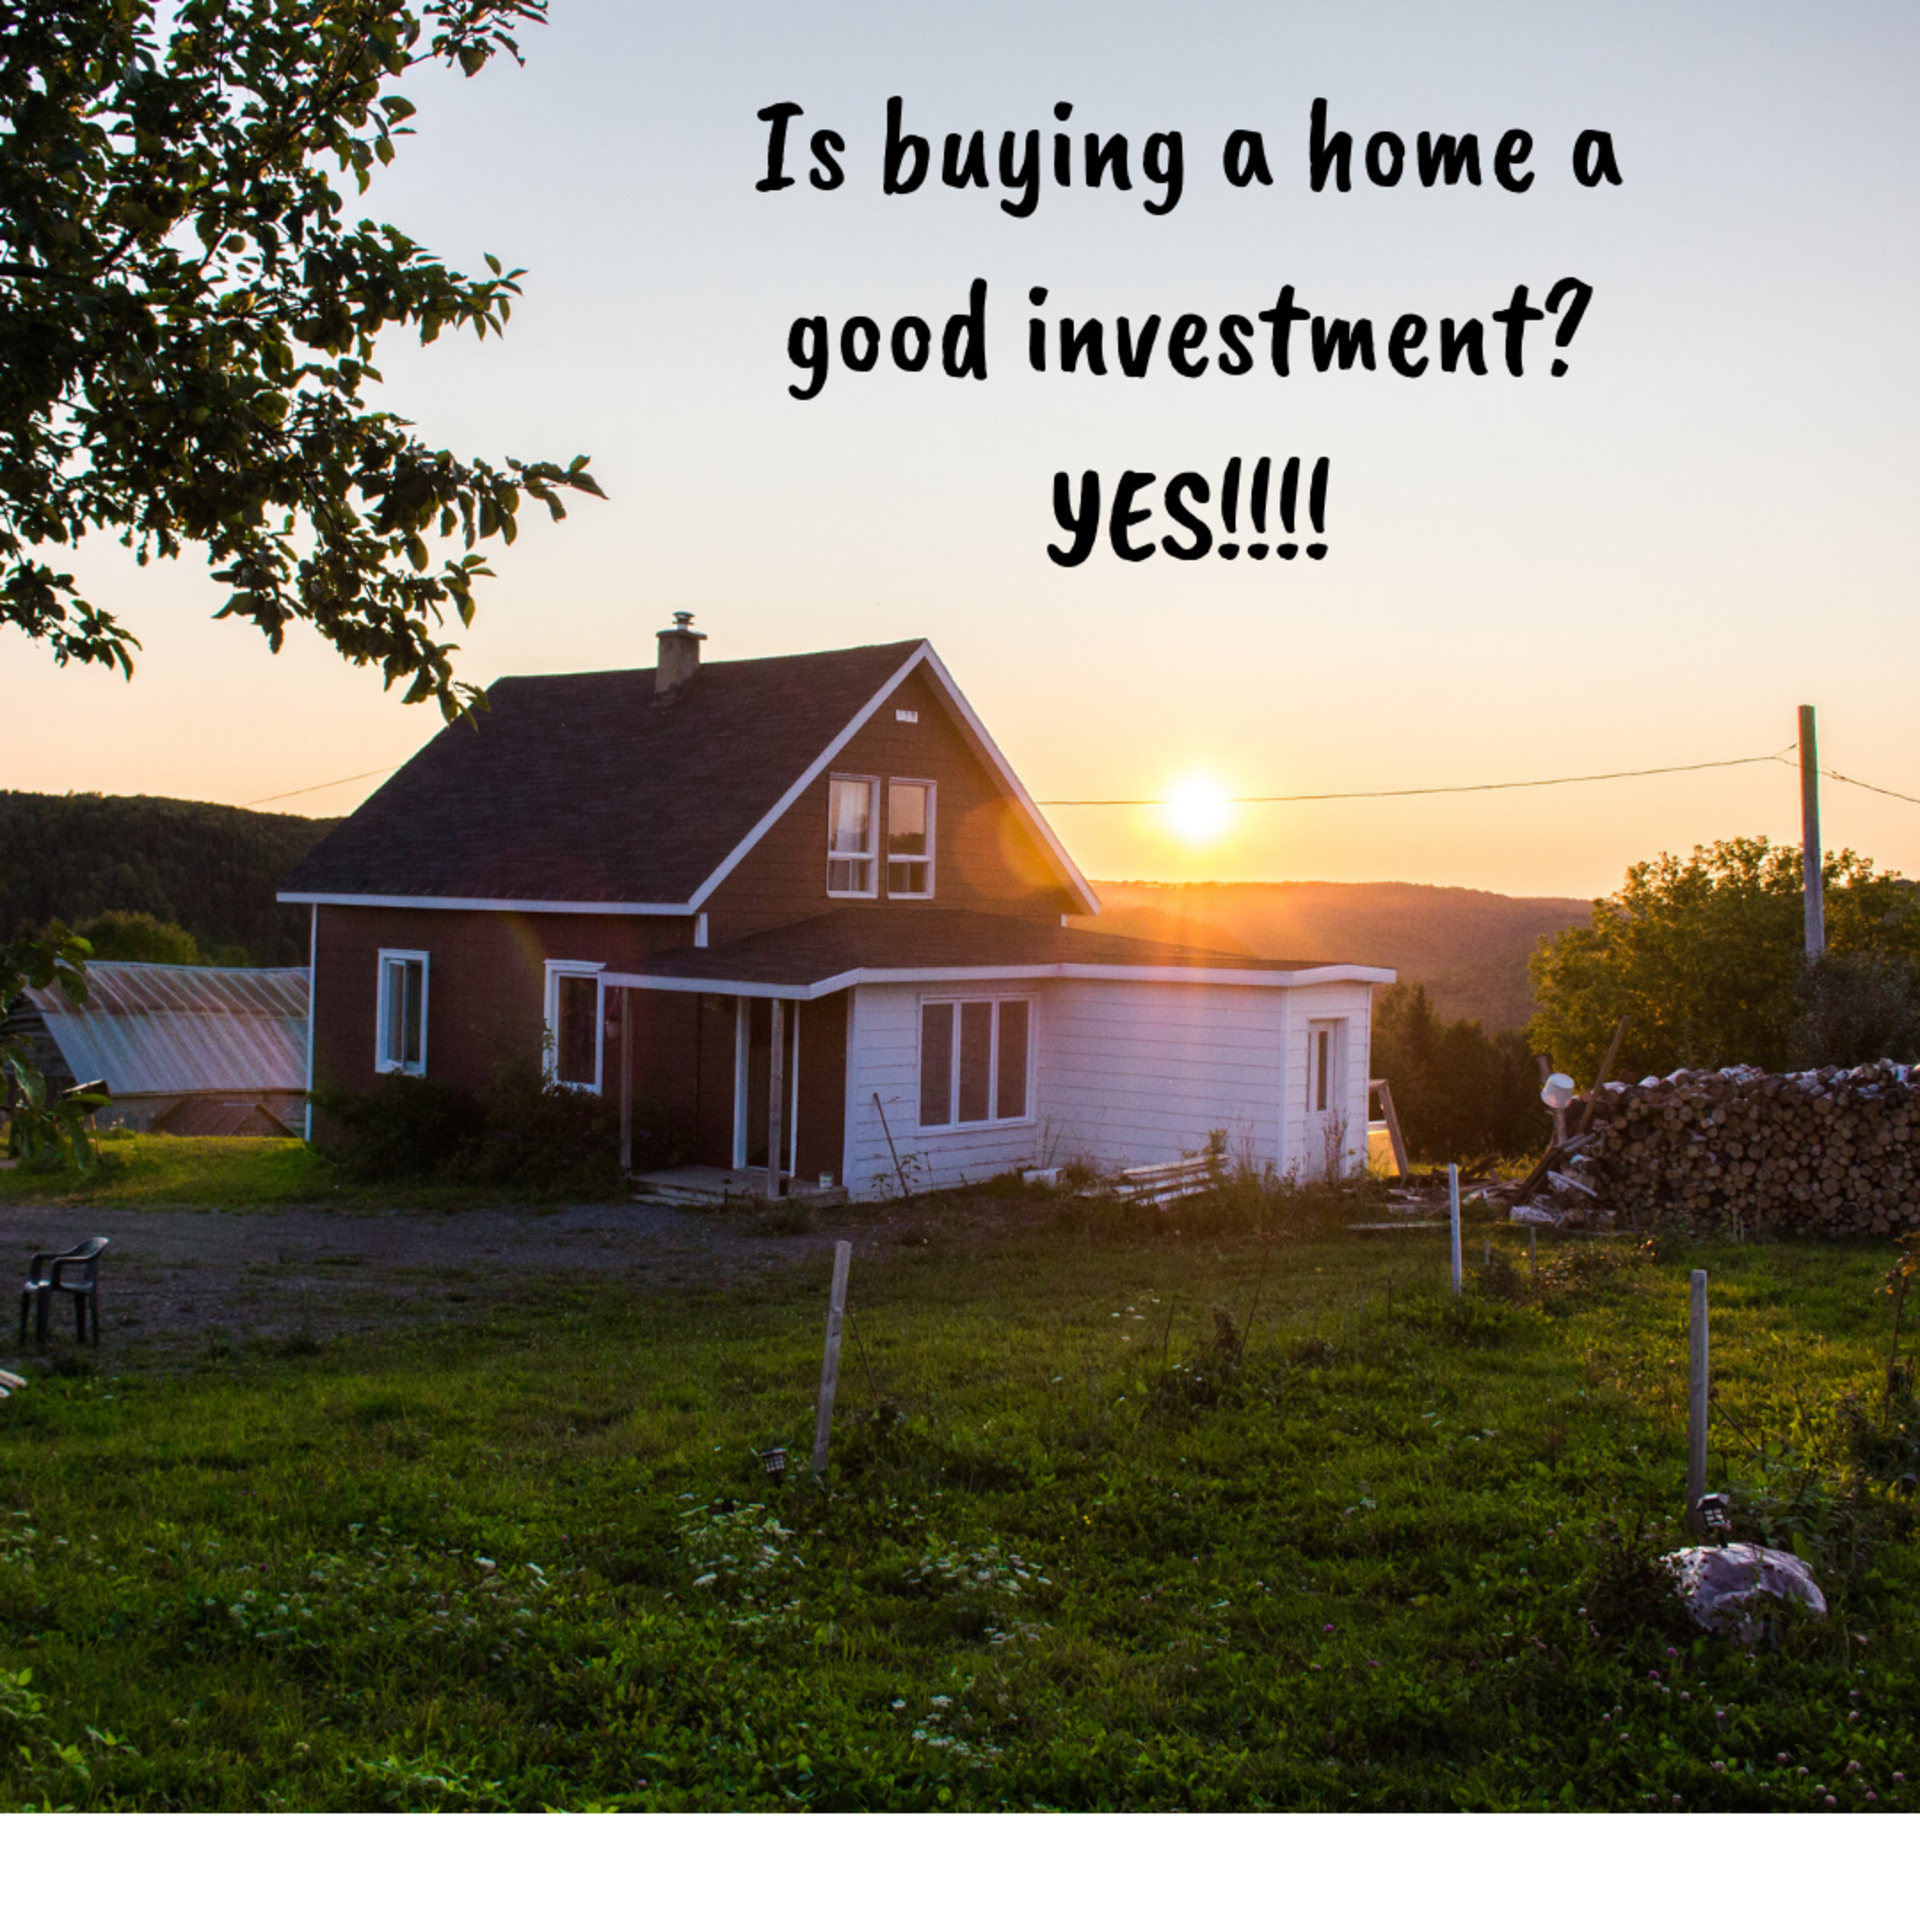 Buying a home is still a great investment!!